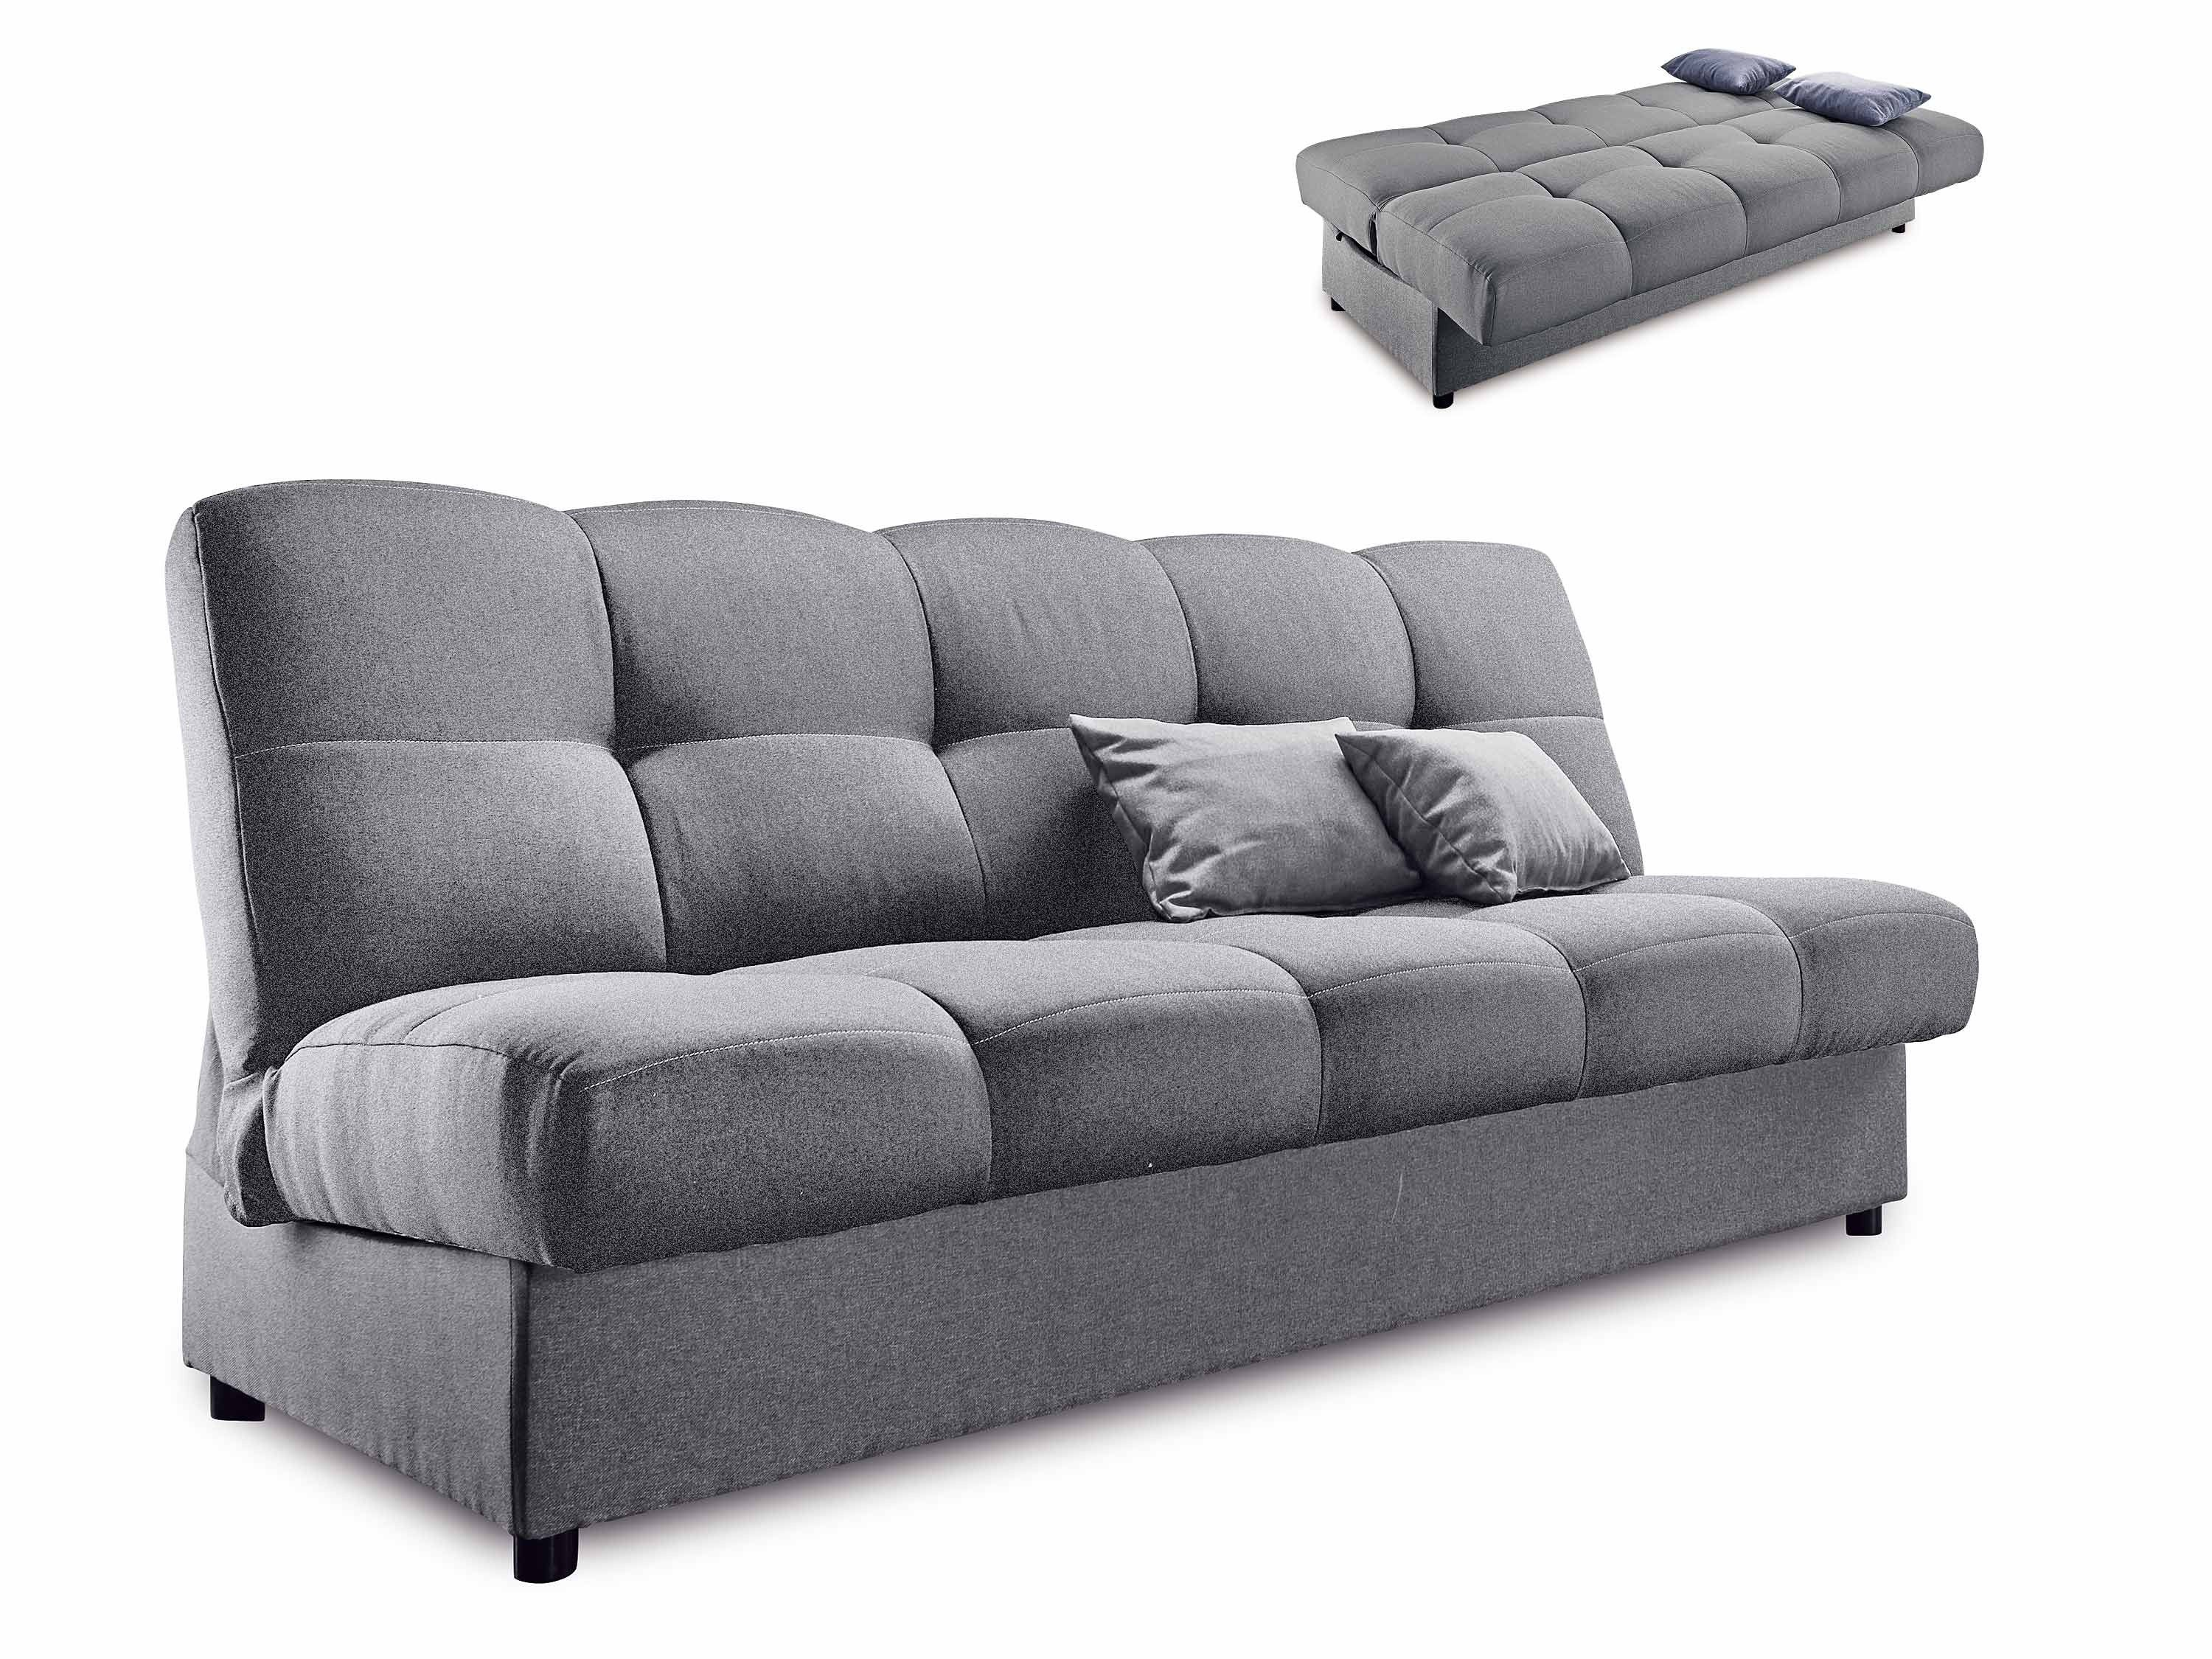 gnstige schlafsofas unter 100 euro beautiful schlafsofa beste sofa unter euro ideen aufregend. Black Bedroom Furniture Sets. Home Design Ideas